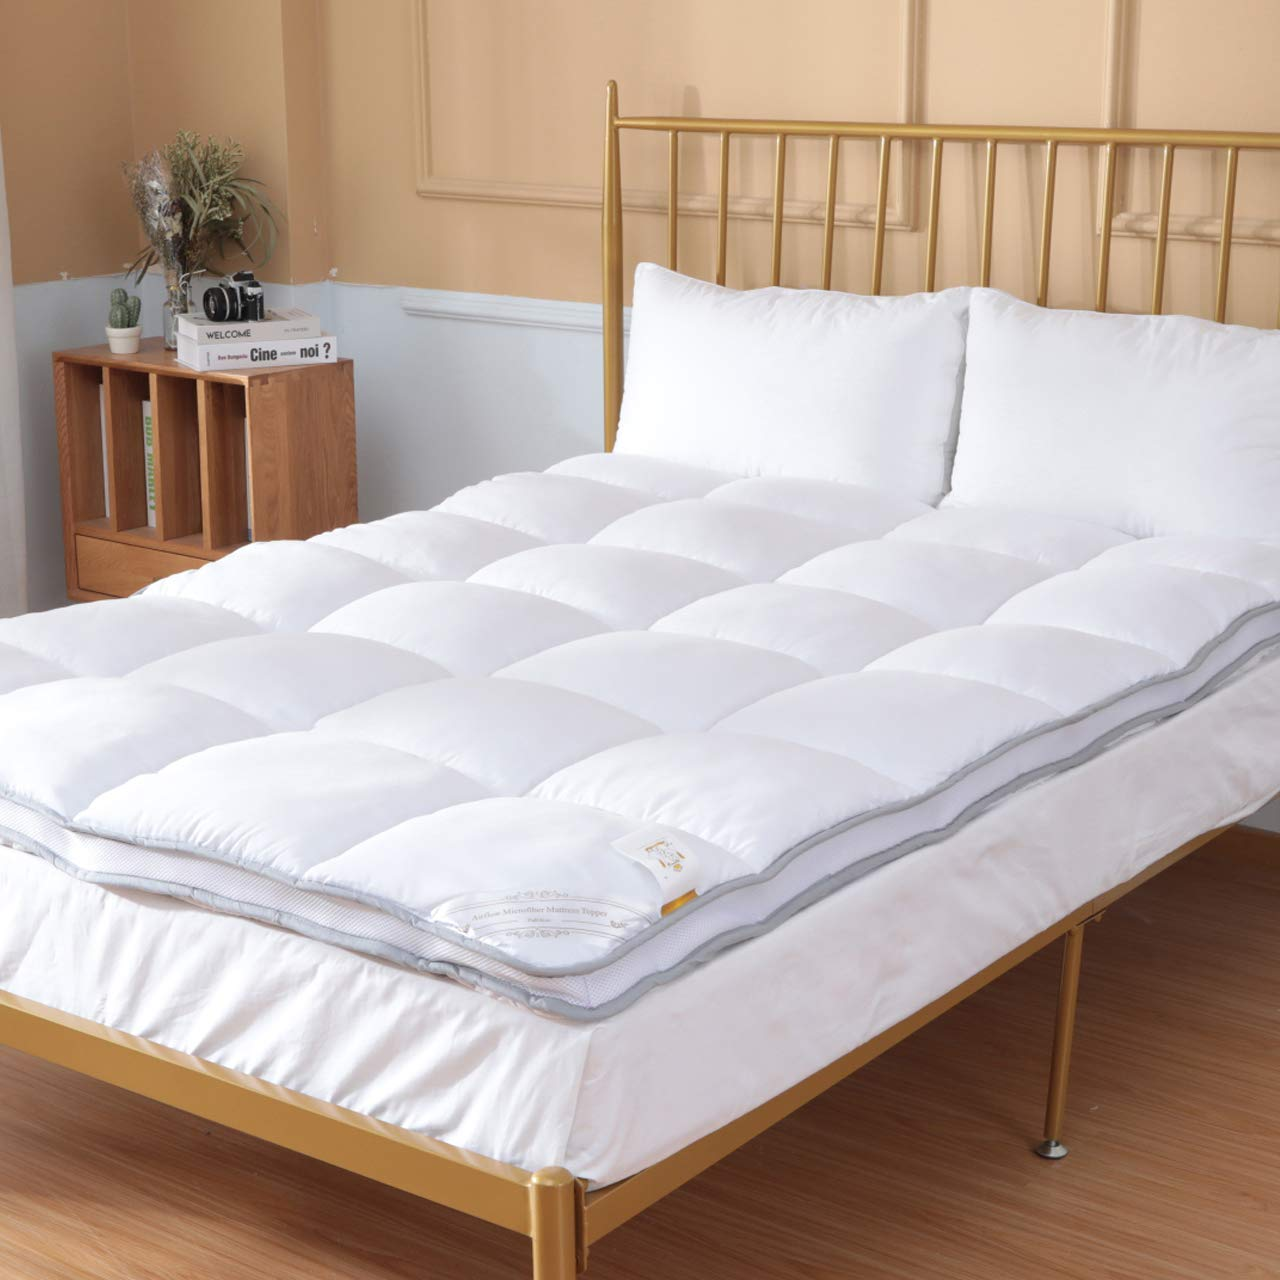 Duck & Goose Co Air-Flow Luxury Hotel Quality Mattress Topper, Ultra Plush Down Alternative Pillow Top Bed Topper 2'' H, King Size